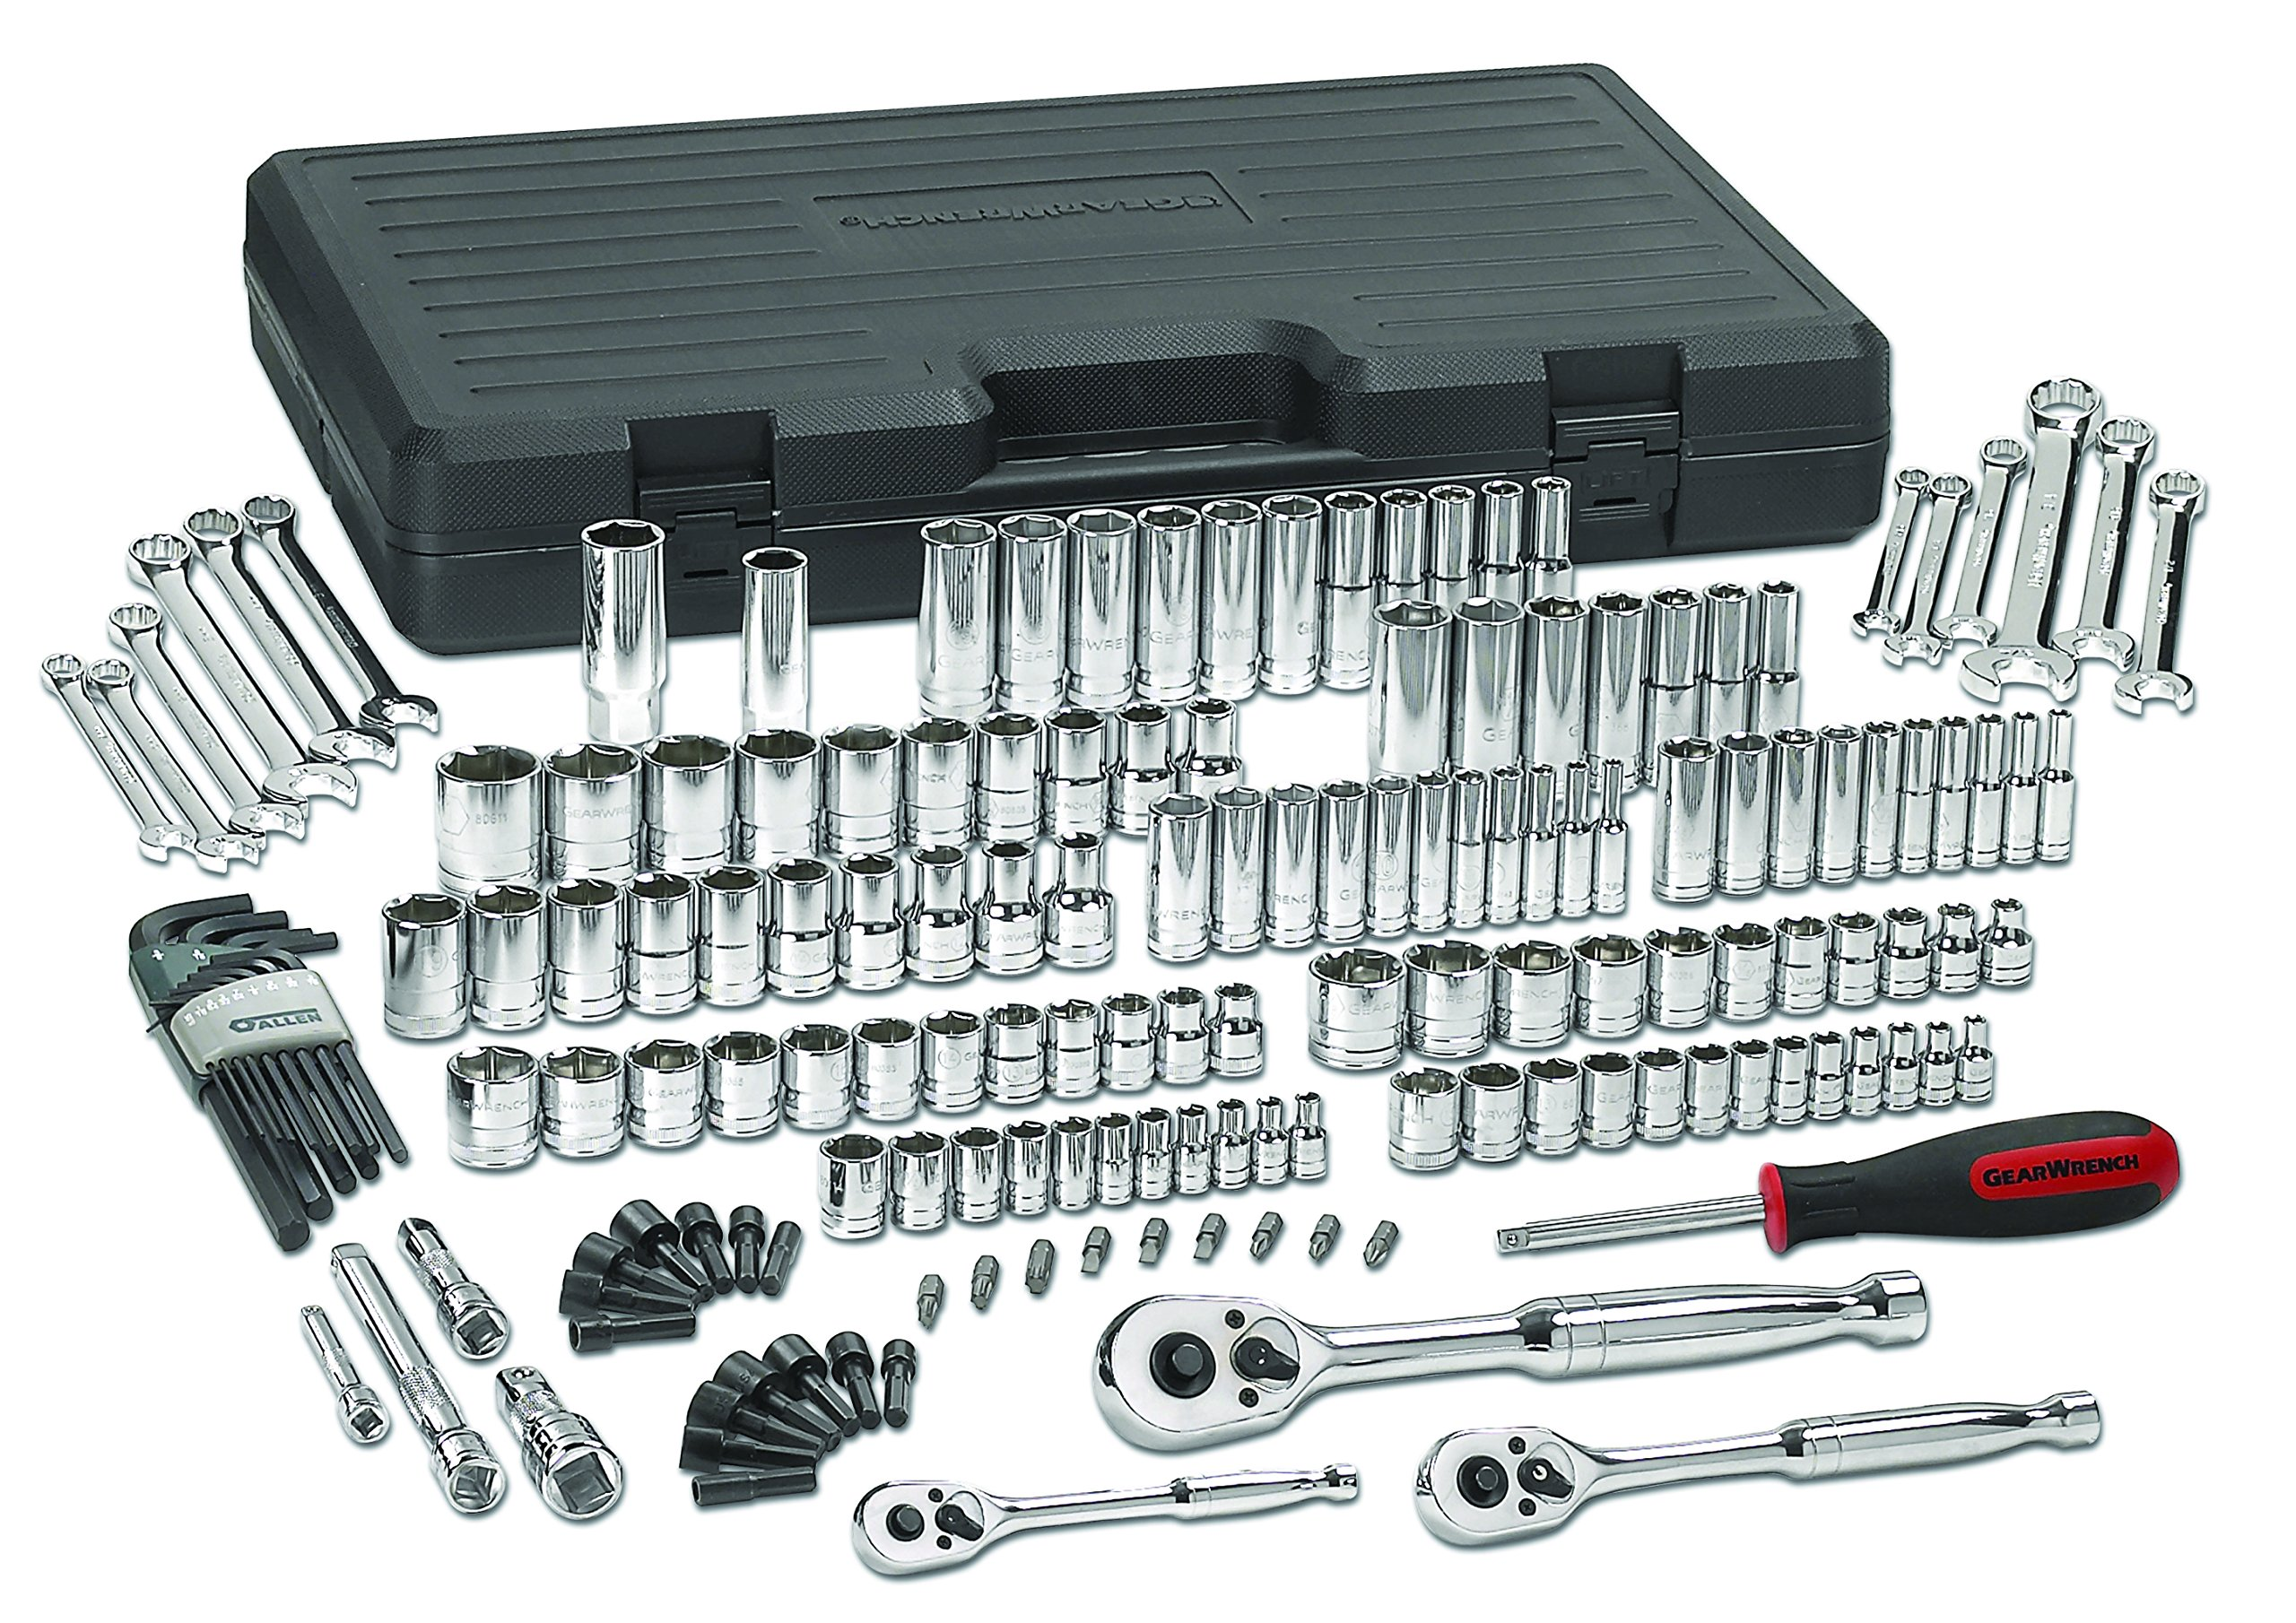 GEARWRENCH 165 Pc. 1/4'', 3/8'' & 1/2'' Drive 6 Point Standard & Deep SAE/Metric Mechanics Tool Set - 80932 by GearWrench